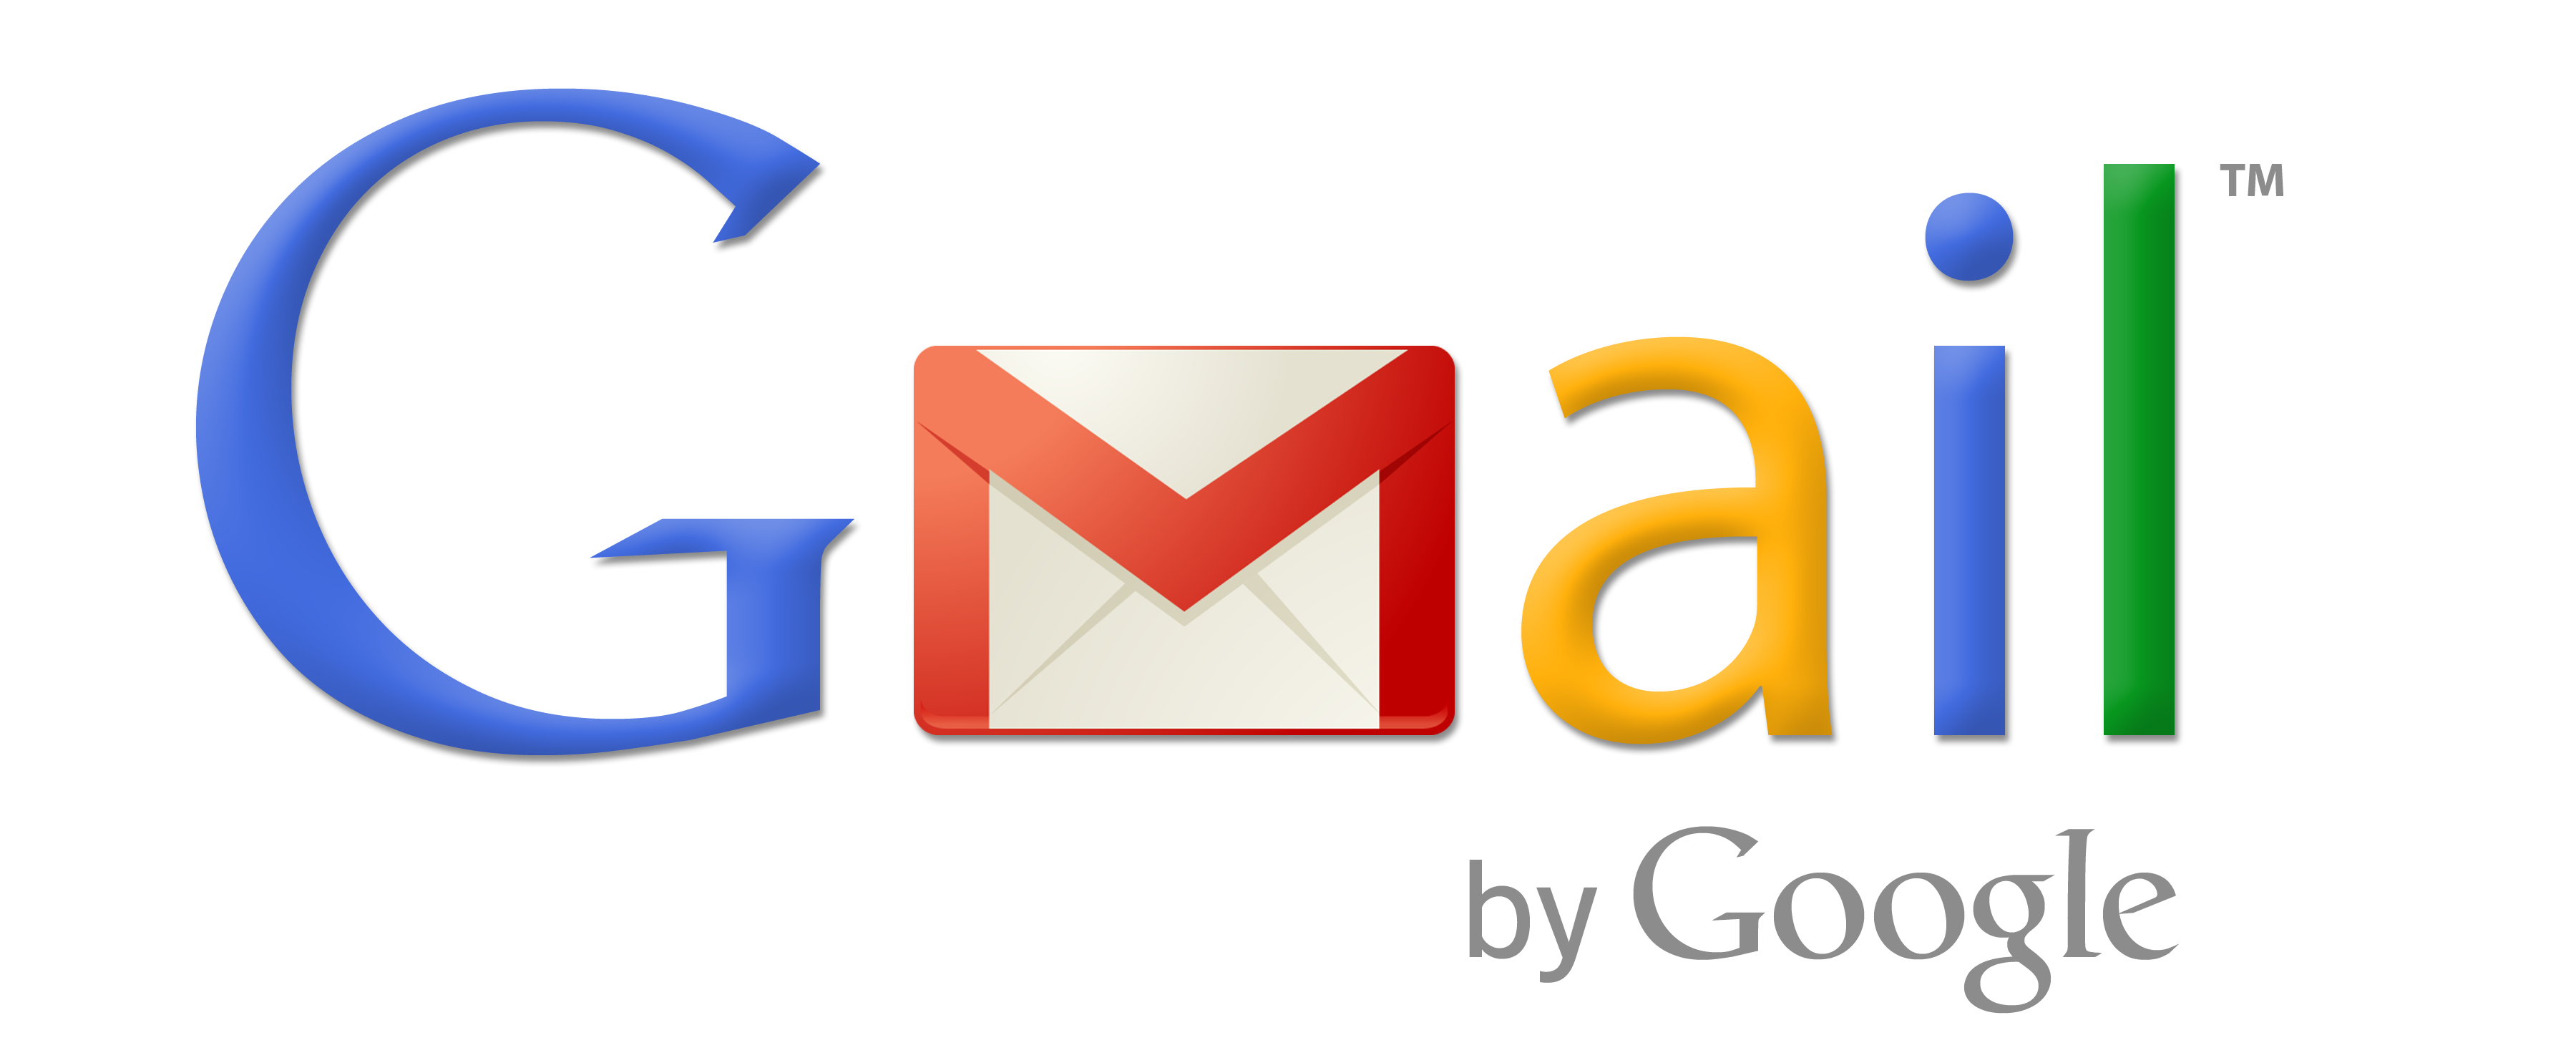 Gmail png transparent background. Logo